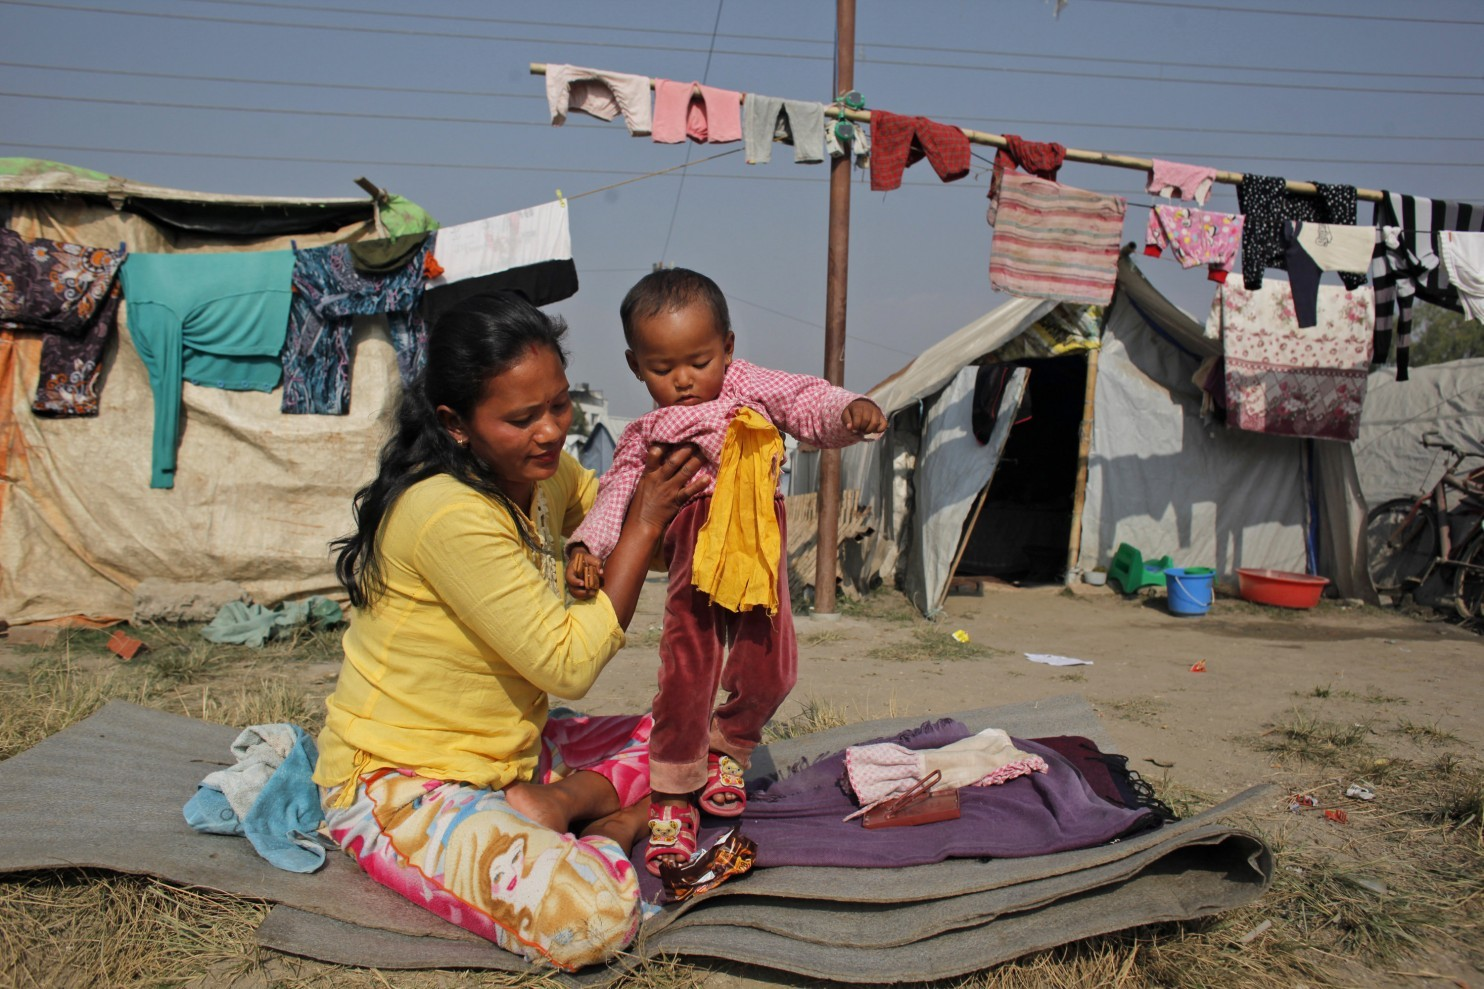 Anjana Shrestha, 28, holds her 19-month-old daughter Smriti at a temporary shelter at the Chuchhepati Camp, where she has been living since the earthquake in April, in Kathmandu, Nepal, Tuesday, December 1, 2015.